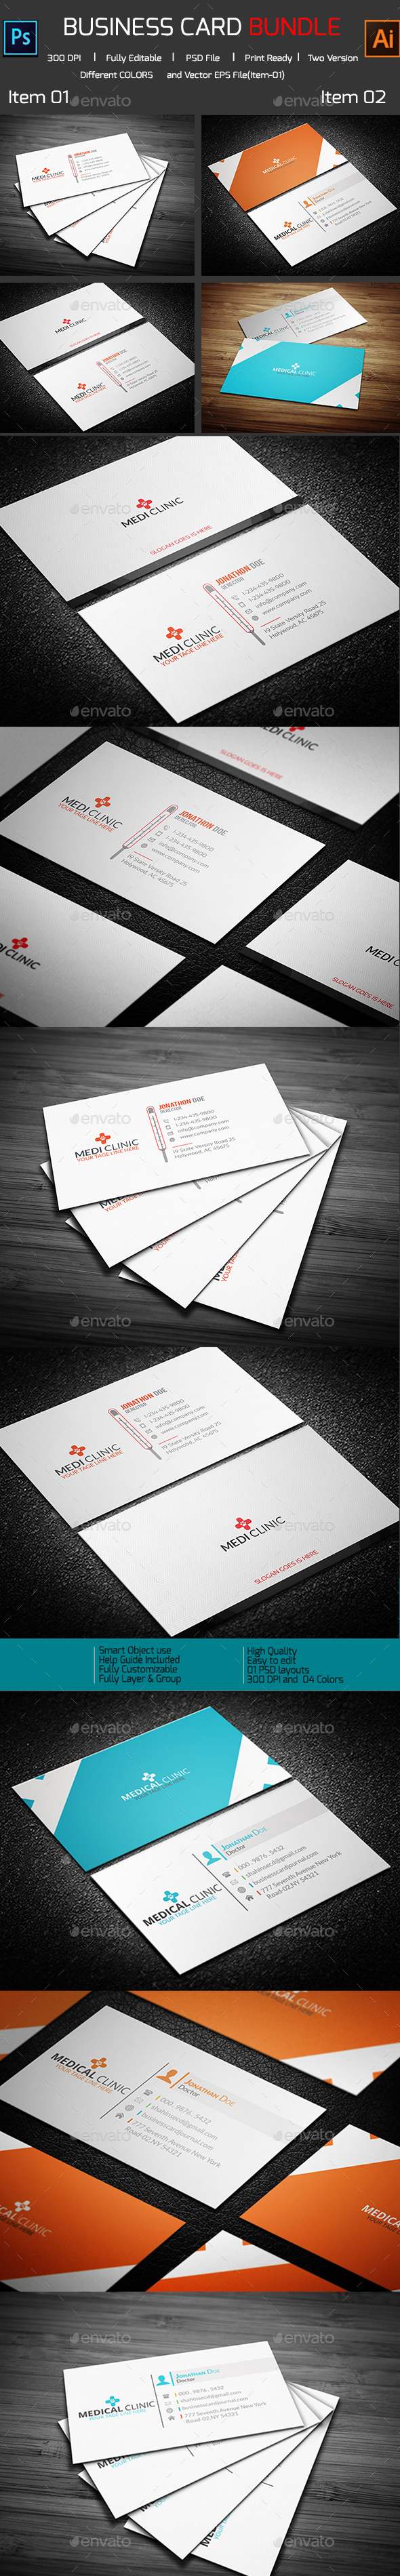 Bundle_10 Medical Business Card(2 in 1) - Corporate Business Cards